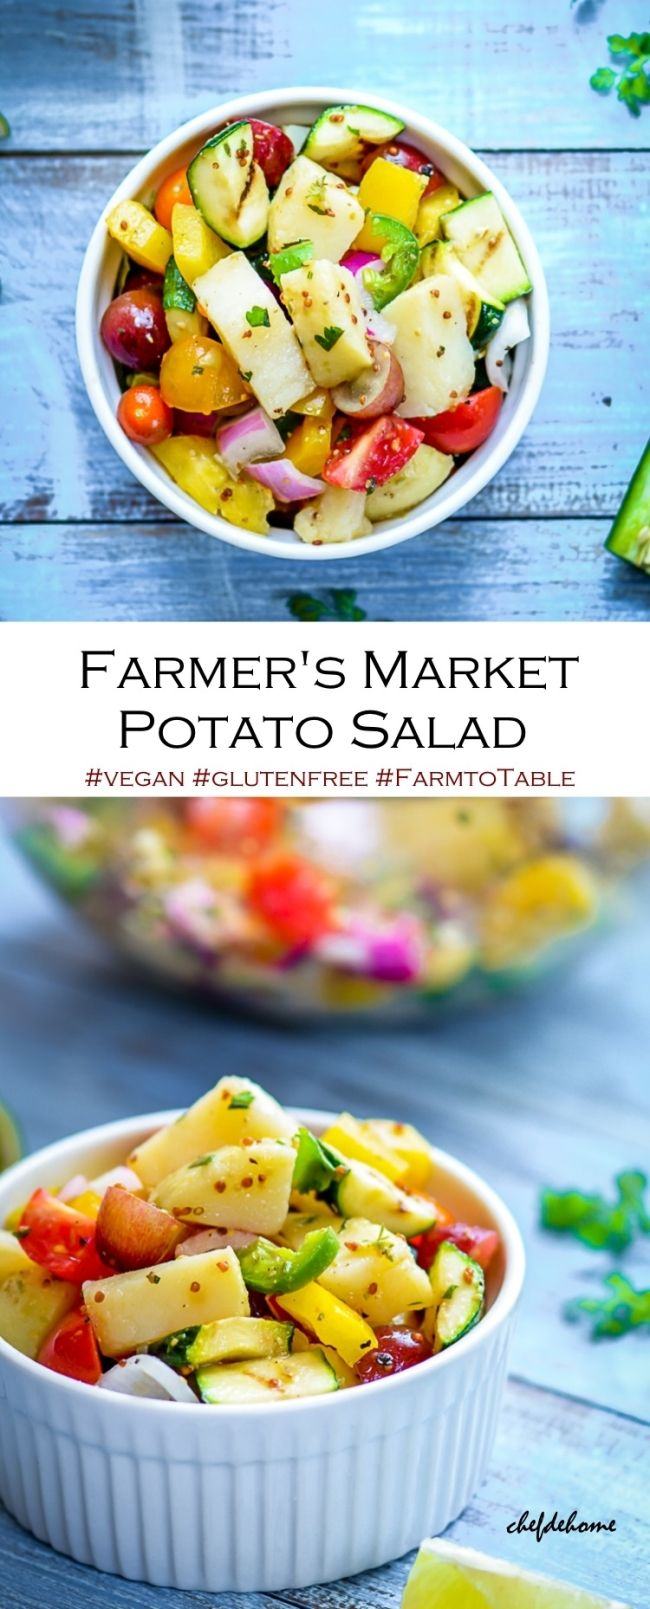 Vegan Potato Salad packed with healthy summer vegetables and lite mustard dressing | chefdehome.com